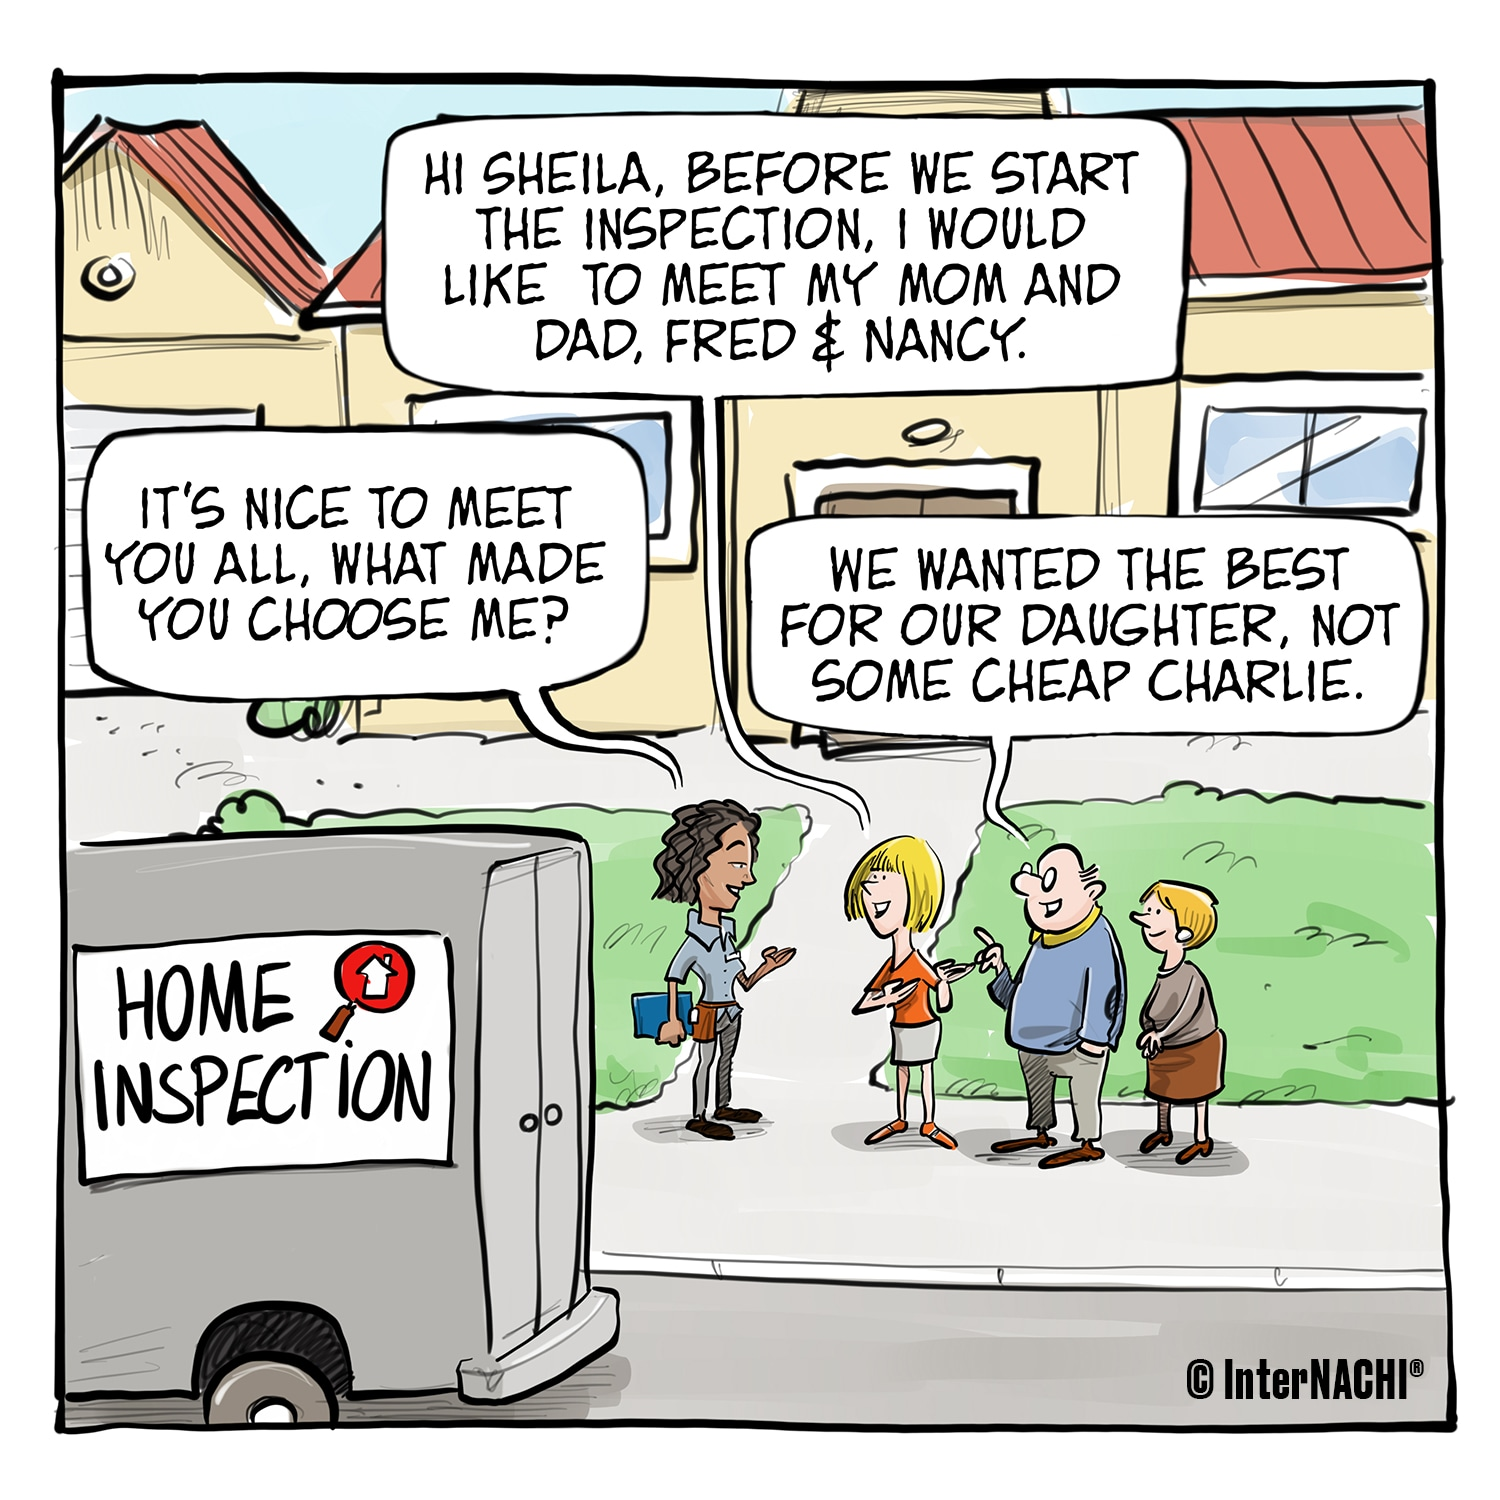 The Inspection Committee Cartoon